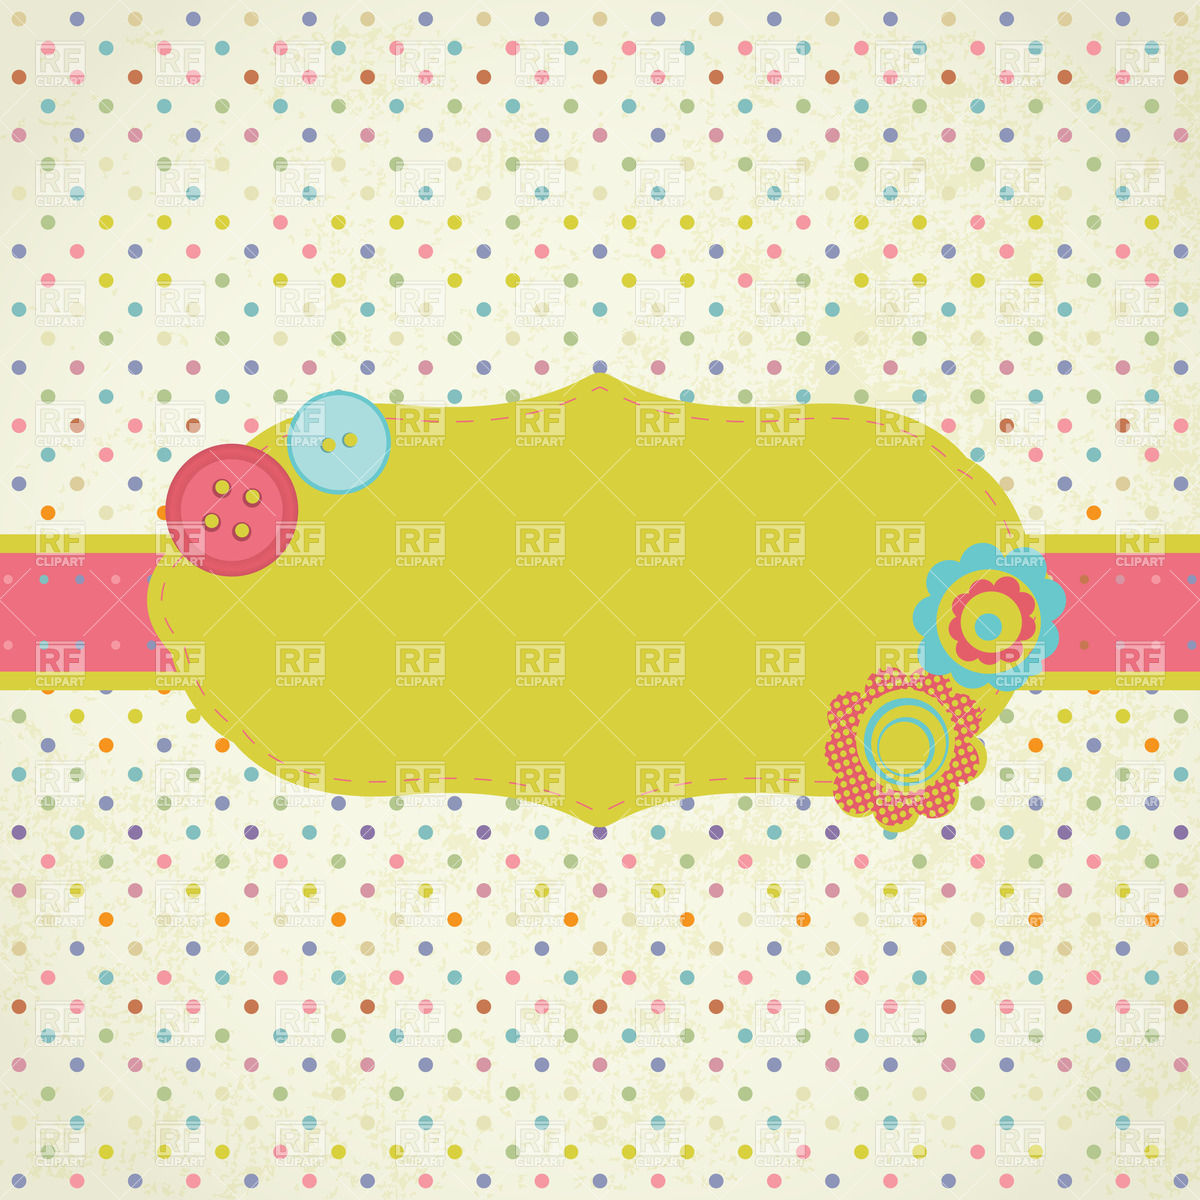 Frame On Polka Dot Background Download Royalty Free Vector Clipart